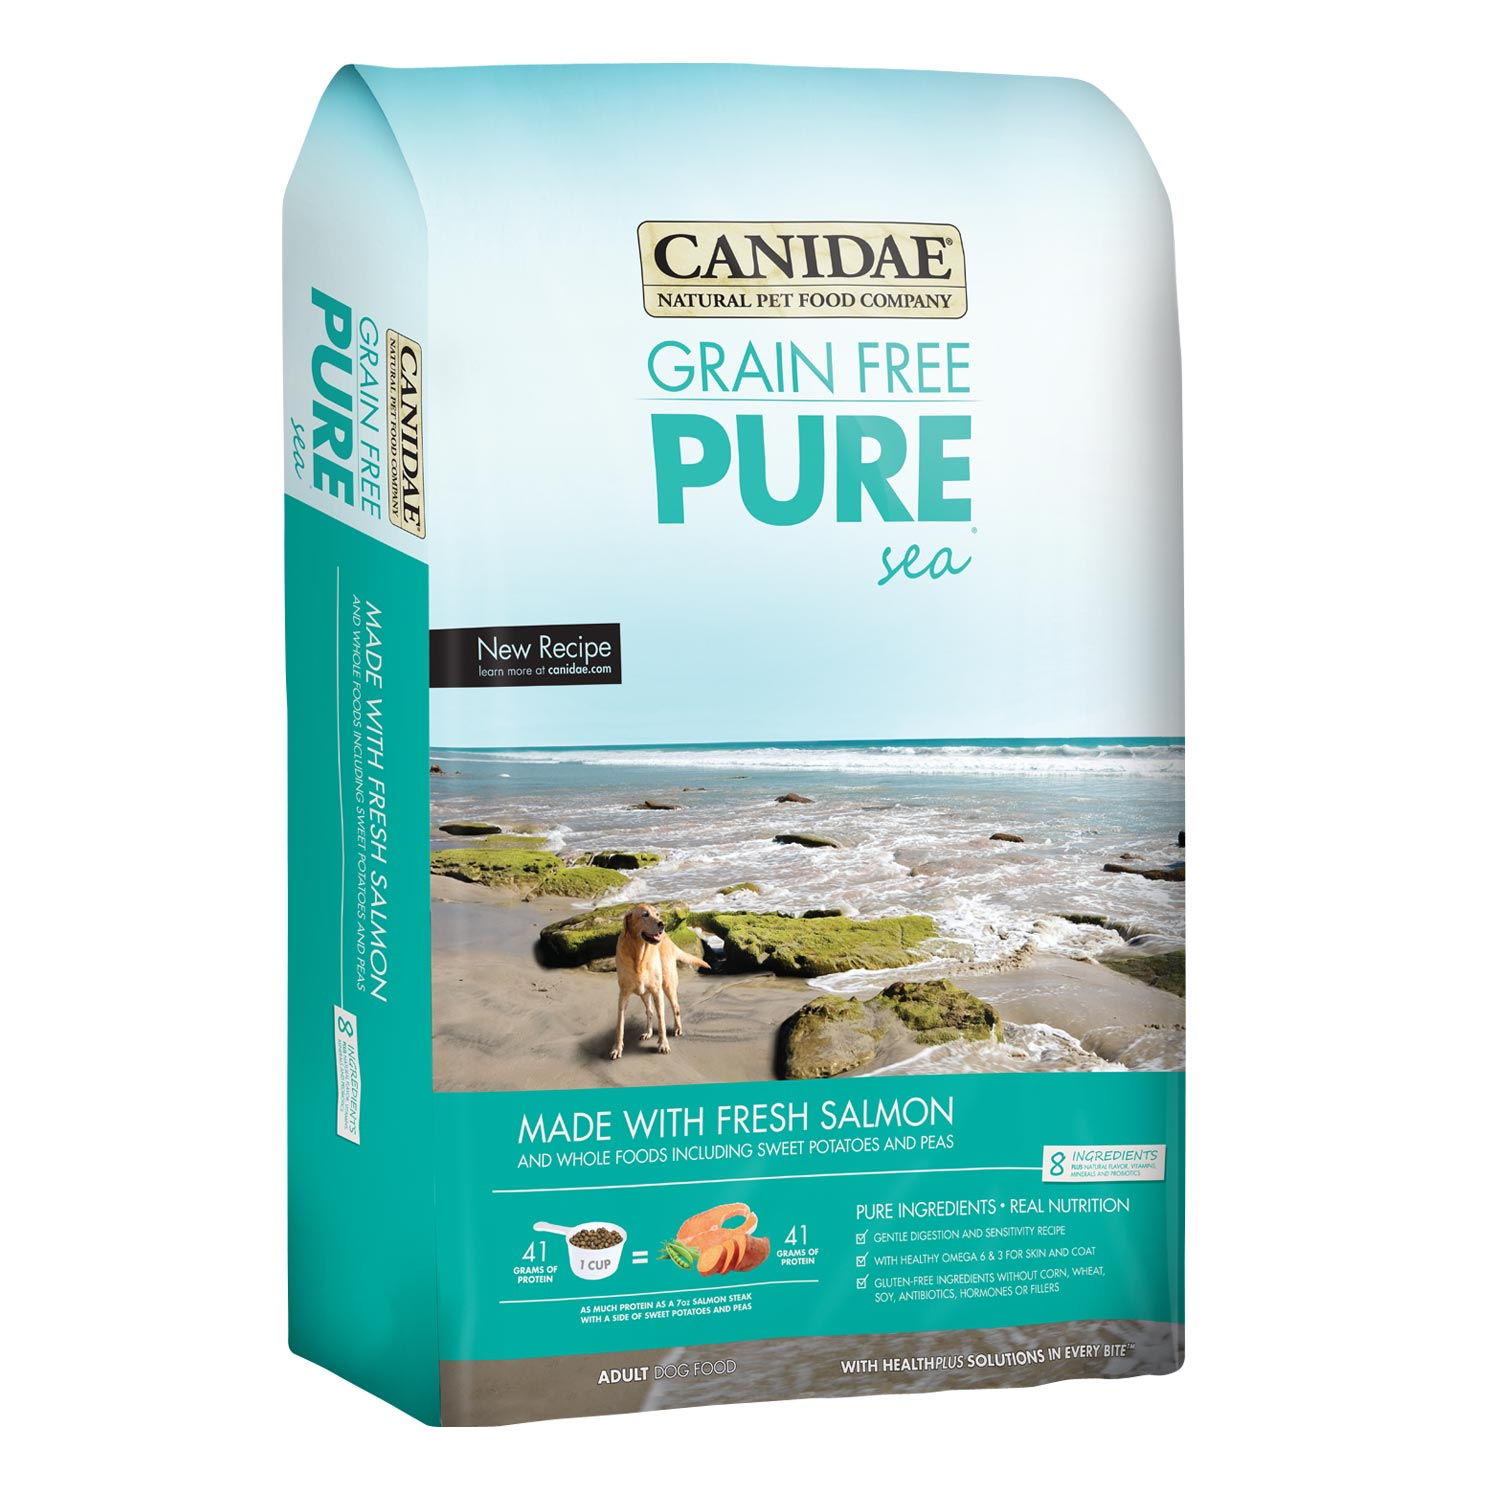 Canidae Seafood Dog Food